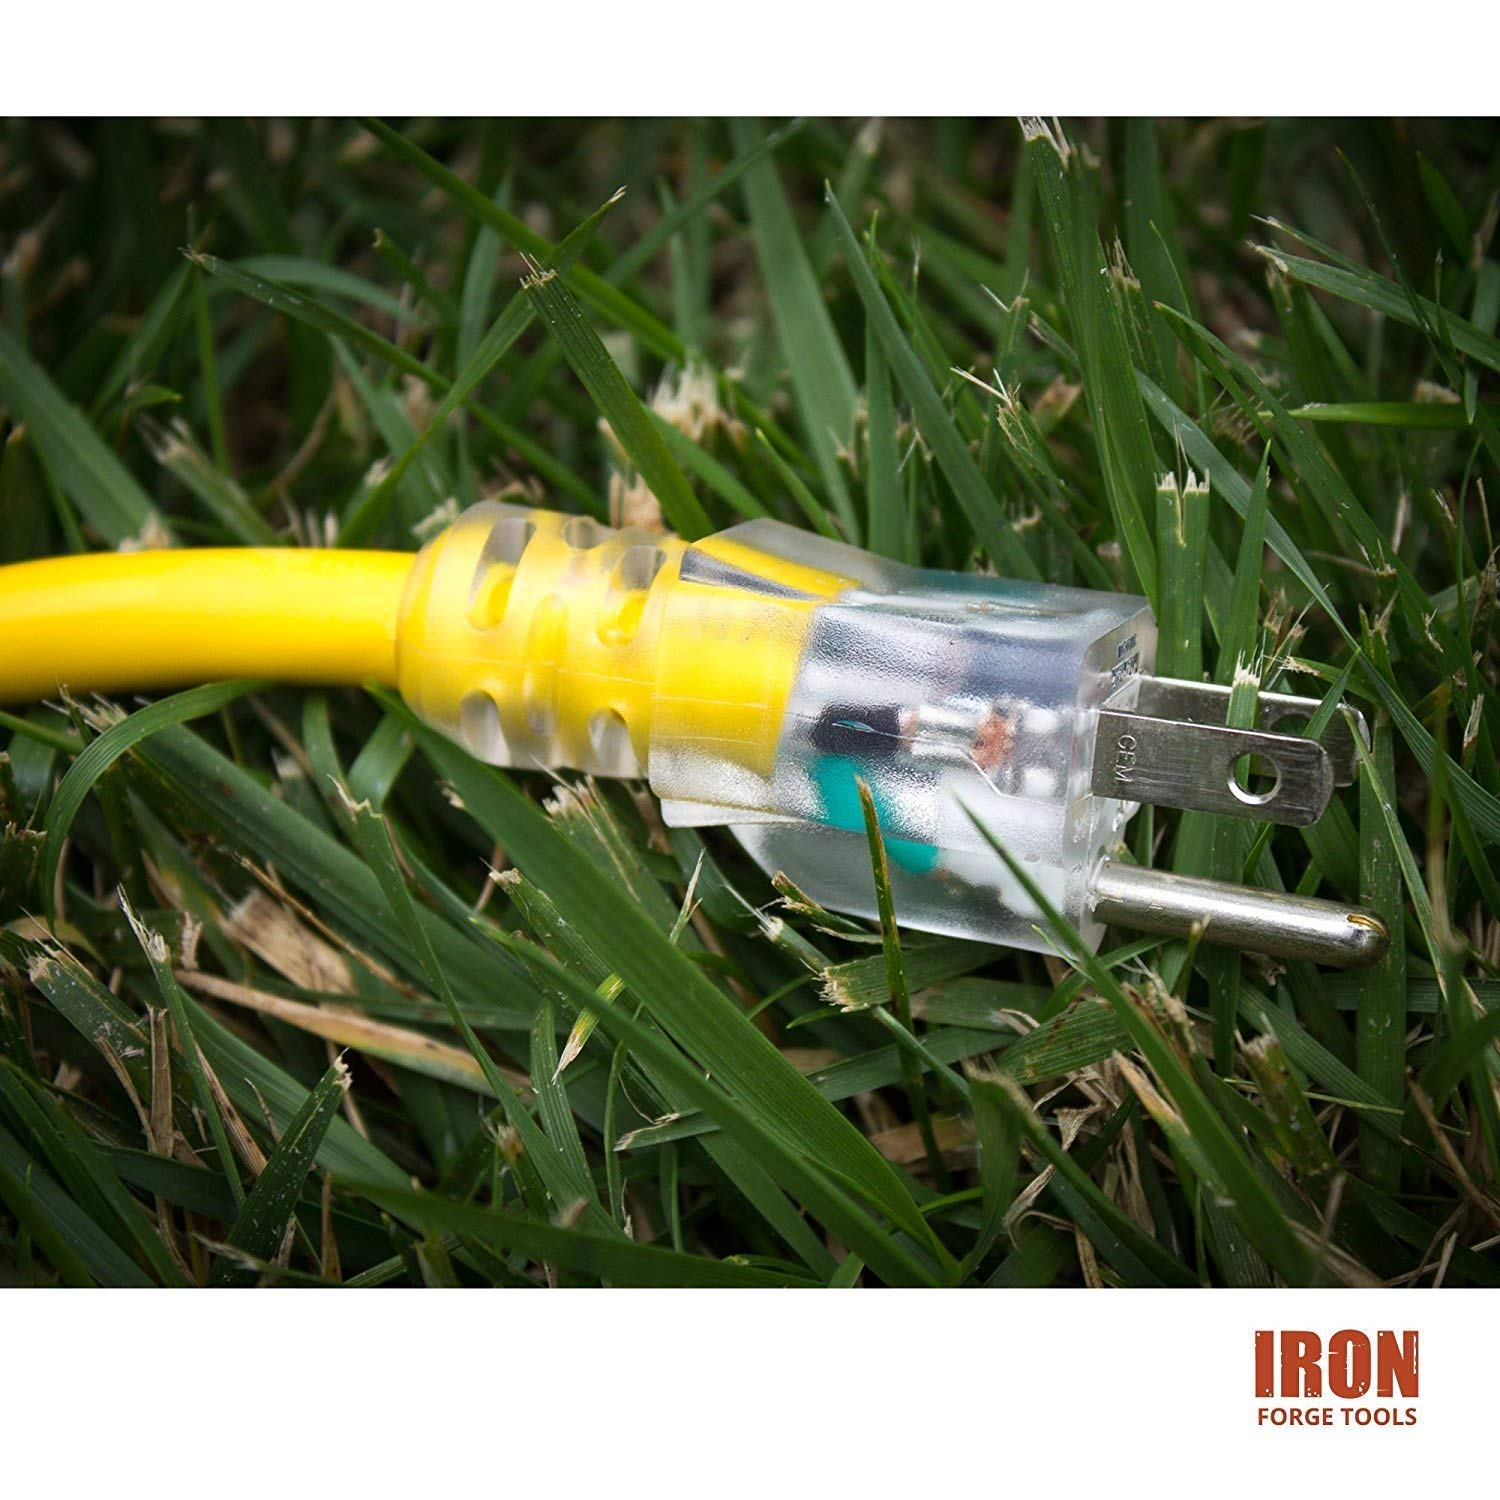 Great for Garden and Major Appliances Iron Forge Cable IFC-103Y25 25 Foot Lighted Outdoor Extension Cord 10//3 SJTW Yellow 10 Gauge Extension Cable with 3 Prong Grounded Plug for Safety